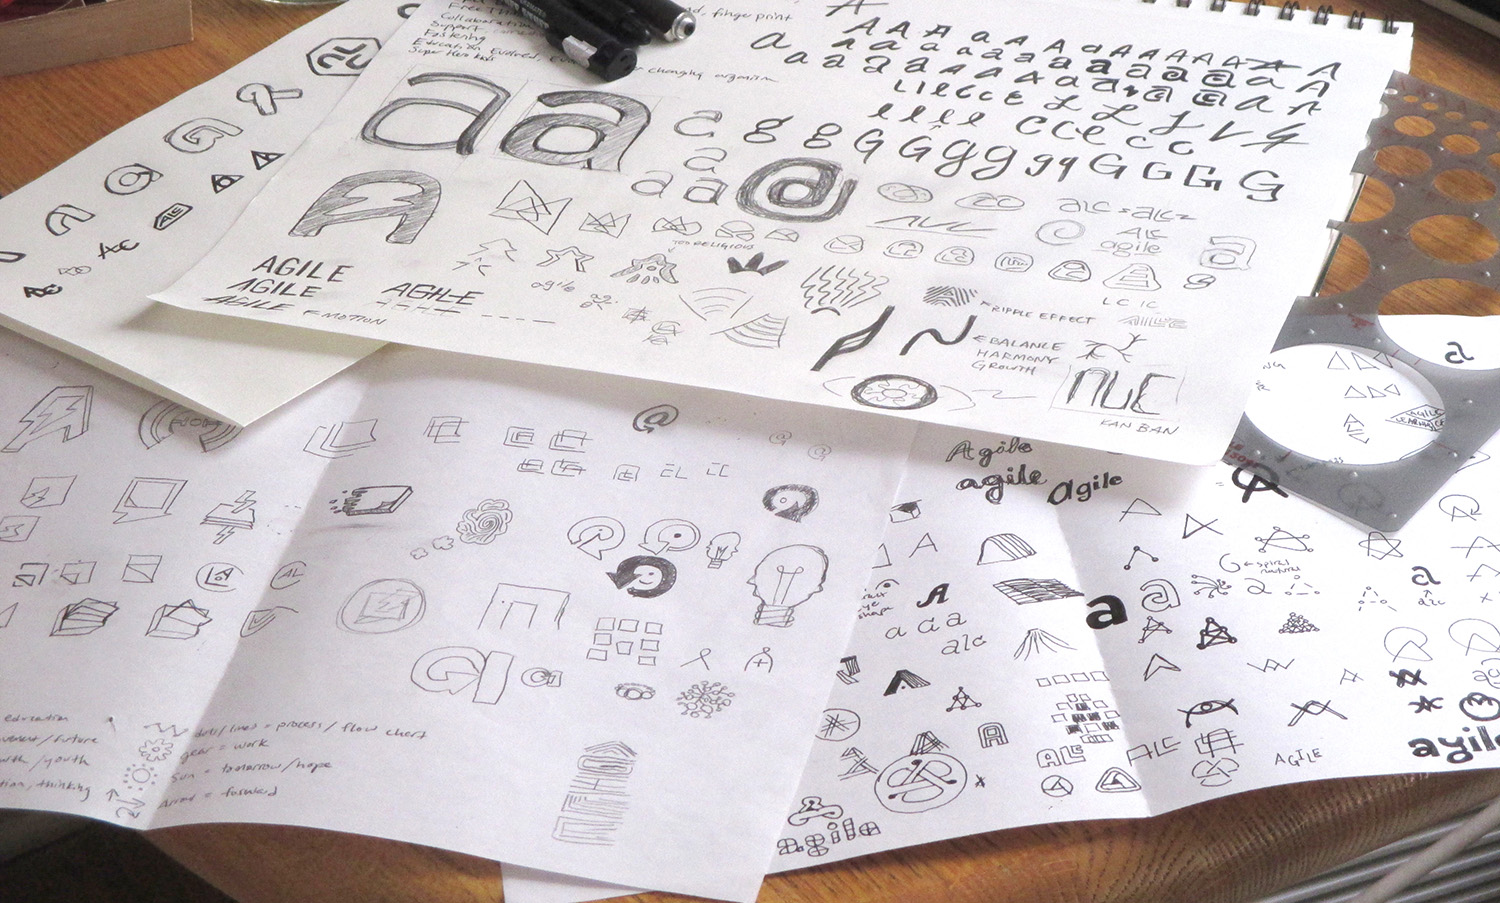 Broad logo exploration sketches using type and image